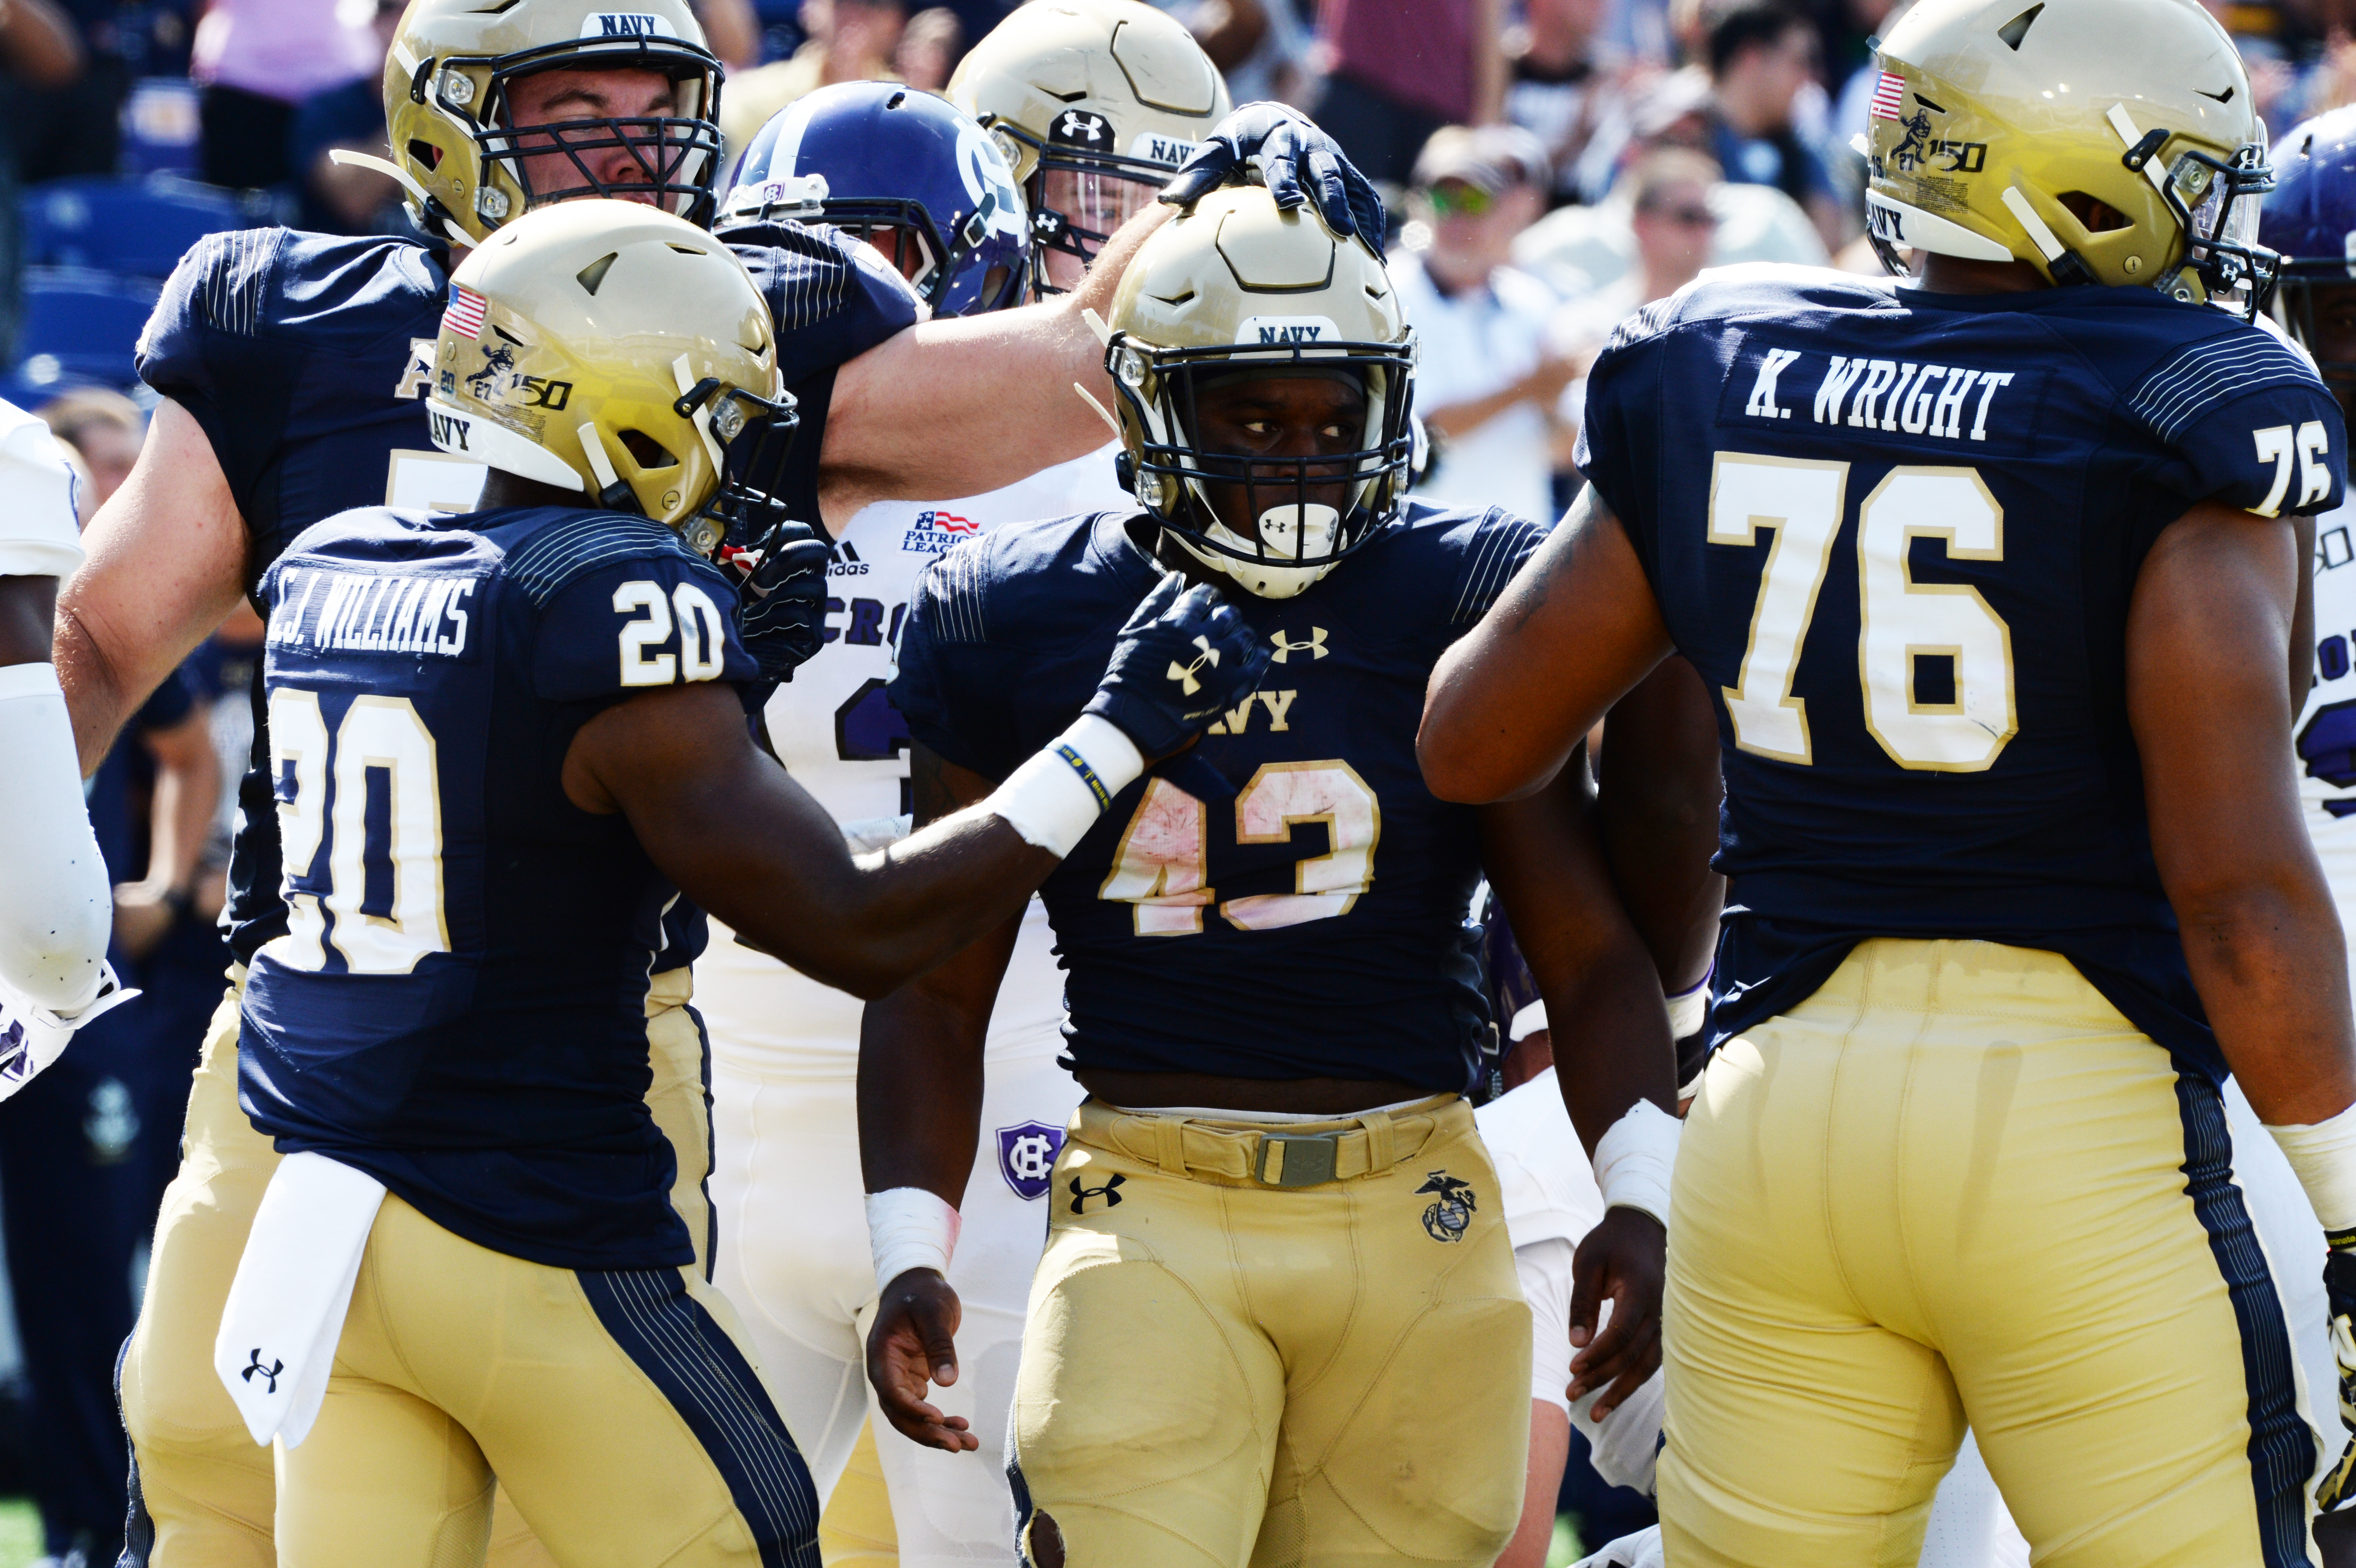 Navy moves into AP's Top 25 with win over UConn